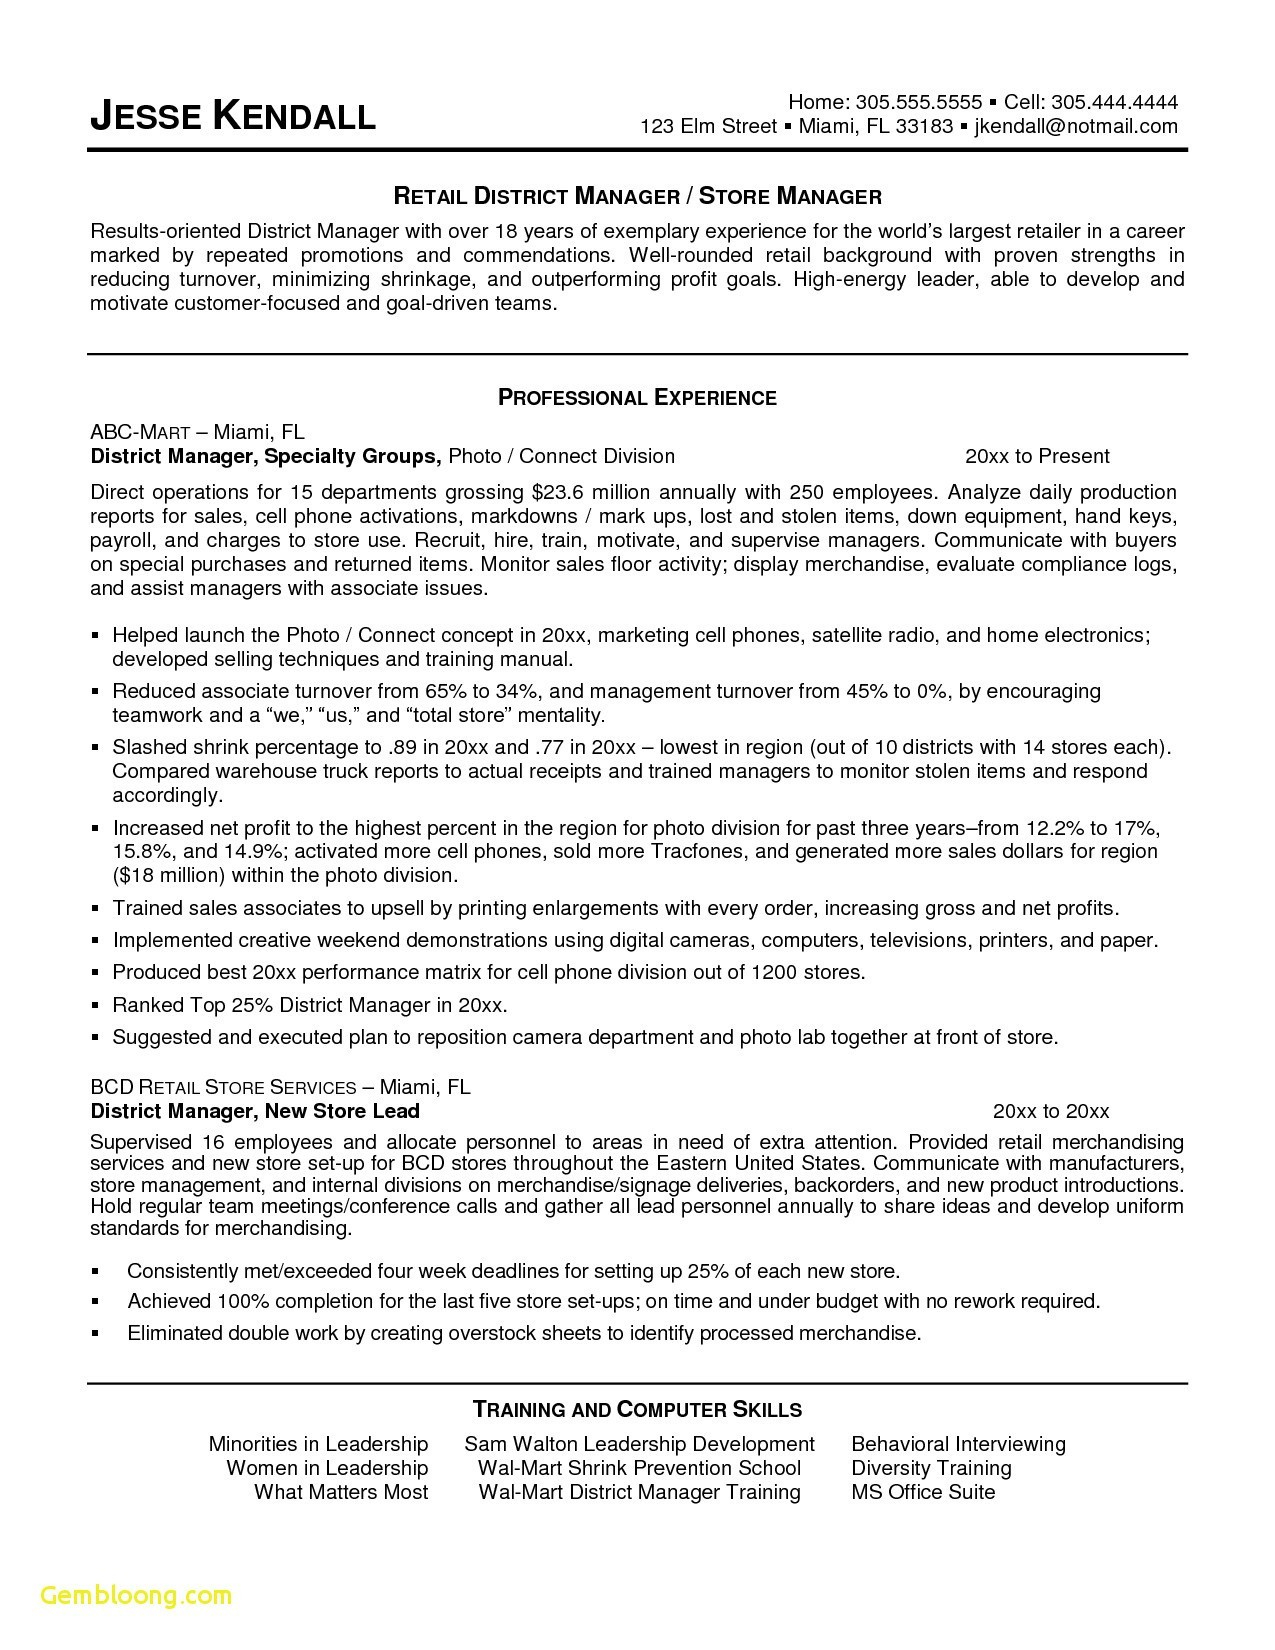 Retail Customer Service Resume - Customer Service Manager Resume Unique Fresh Grapher Resume Sample